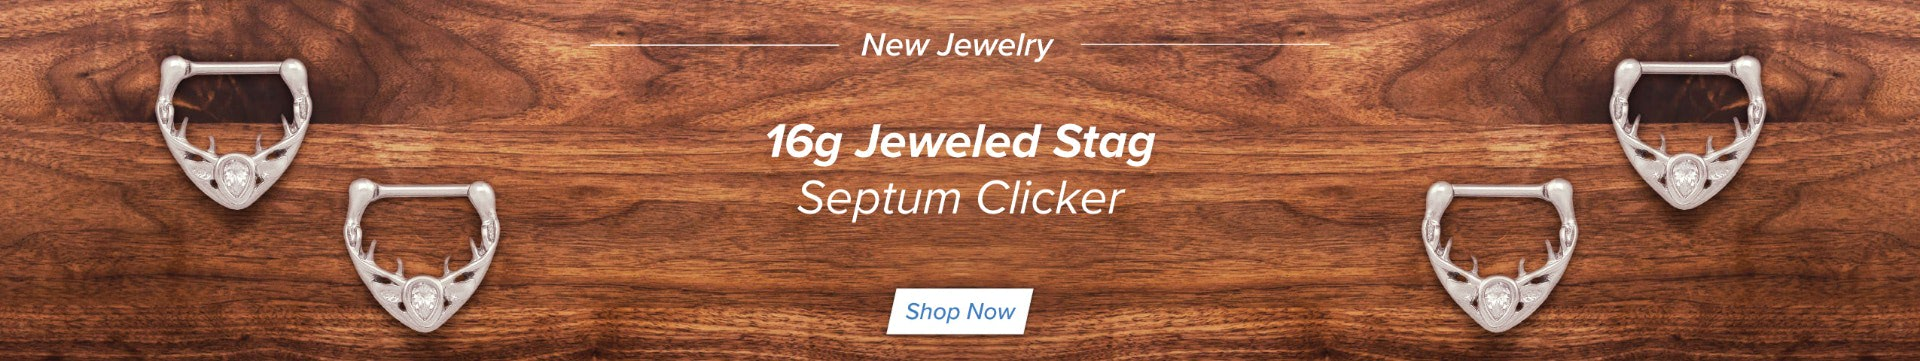 16g Jeweled Stag Septum Clicker